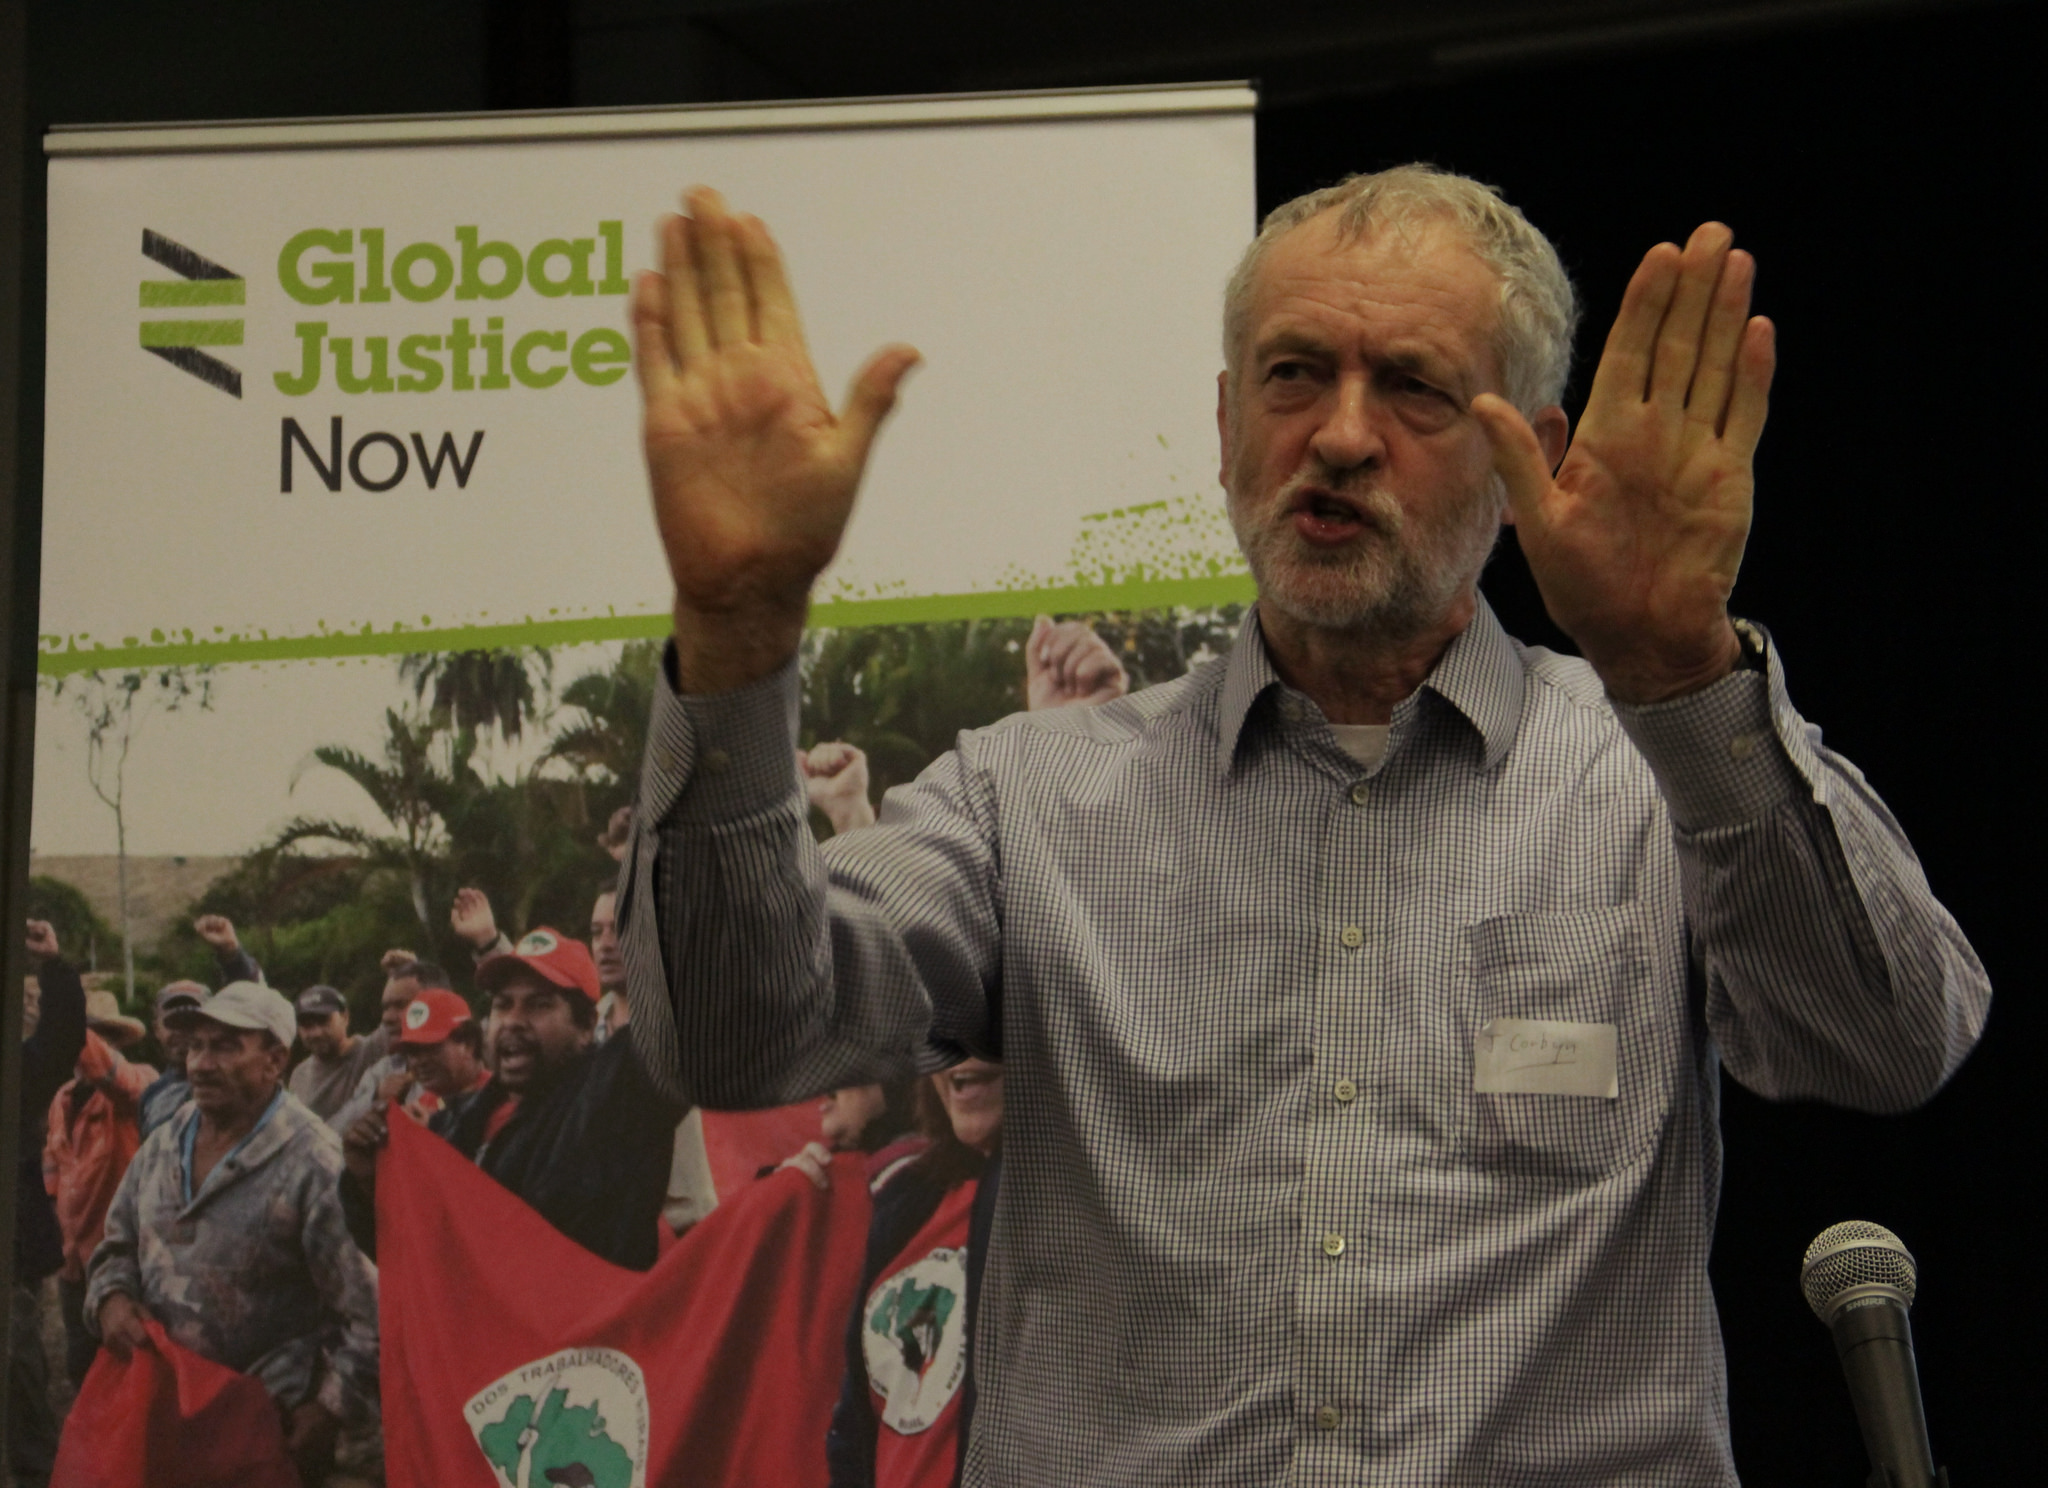 Jeremy Corbyn's Victory Is a Political Bombshell for the UK